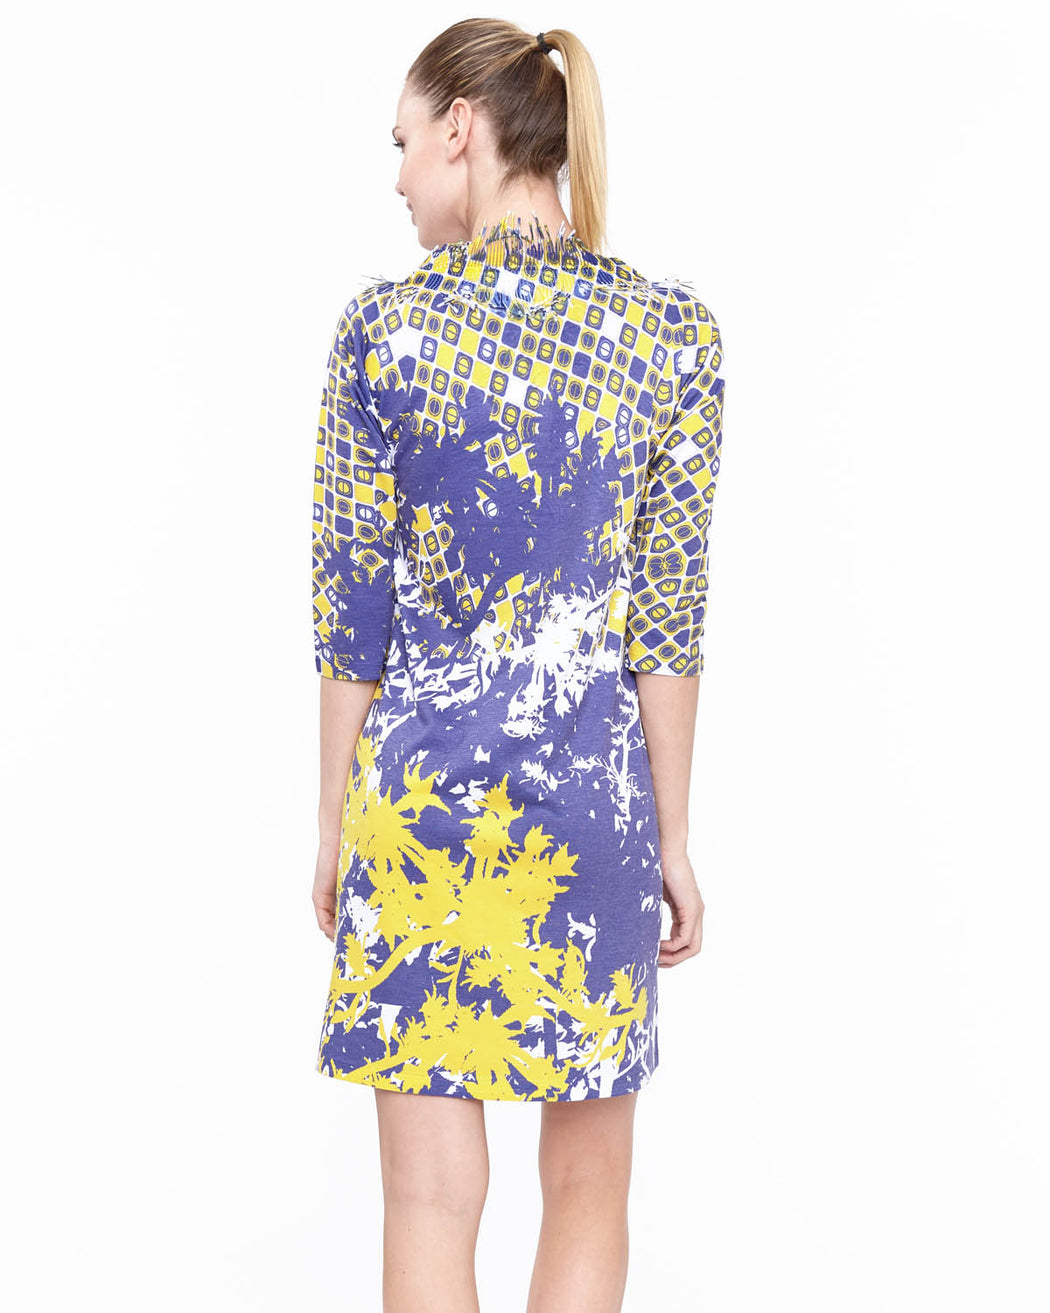 Coral Neck Dress in Avion Print - Atelier5